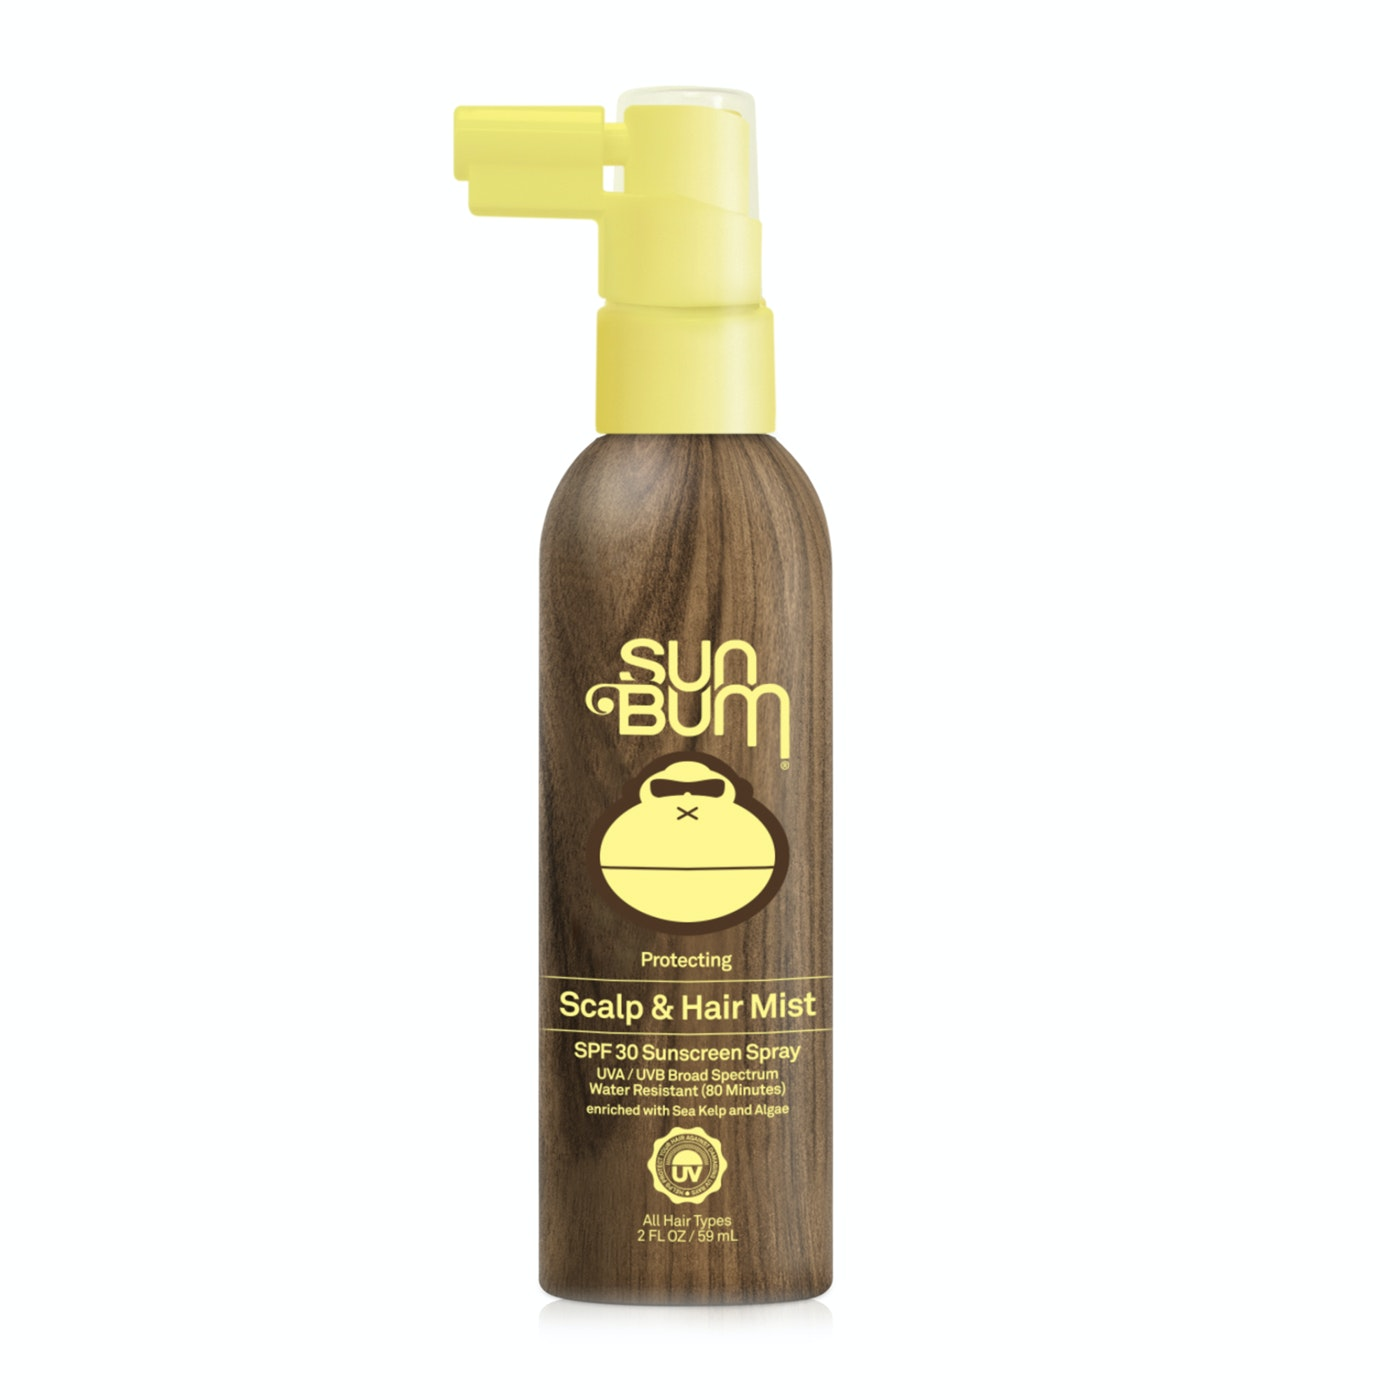 Sun Bum® Original SPF 30 Protecting Scalp & Hair Mist